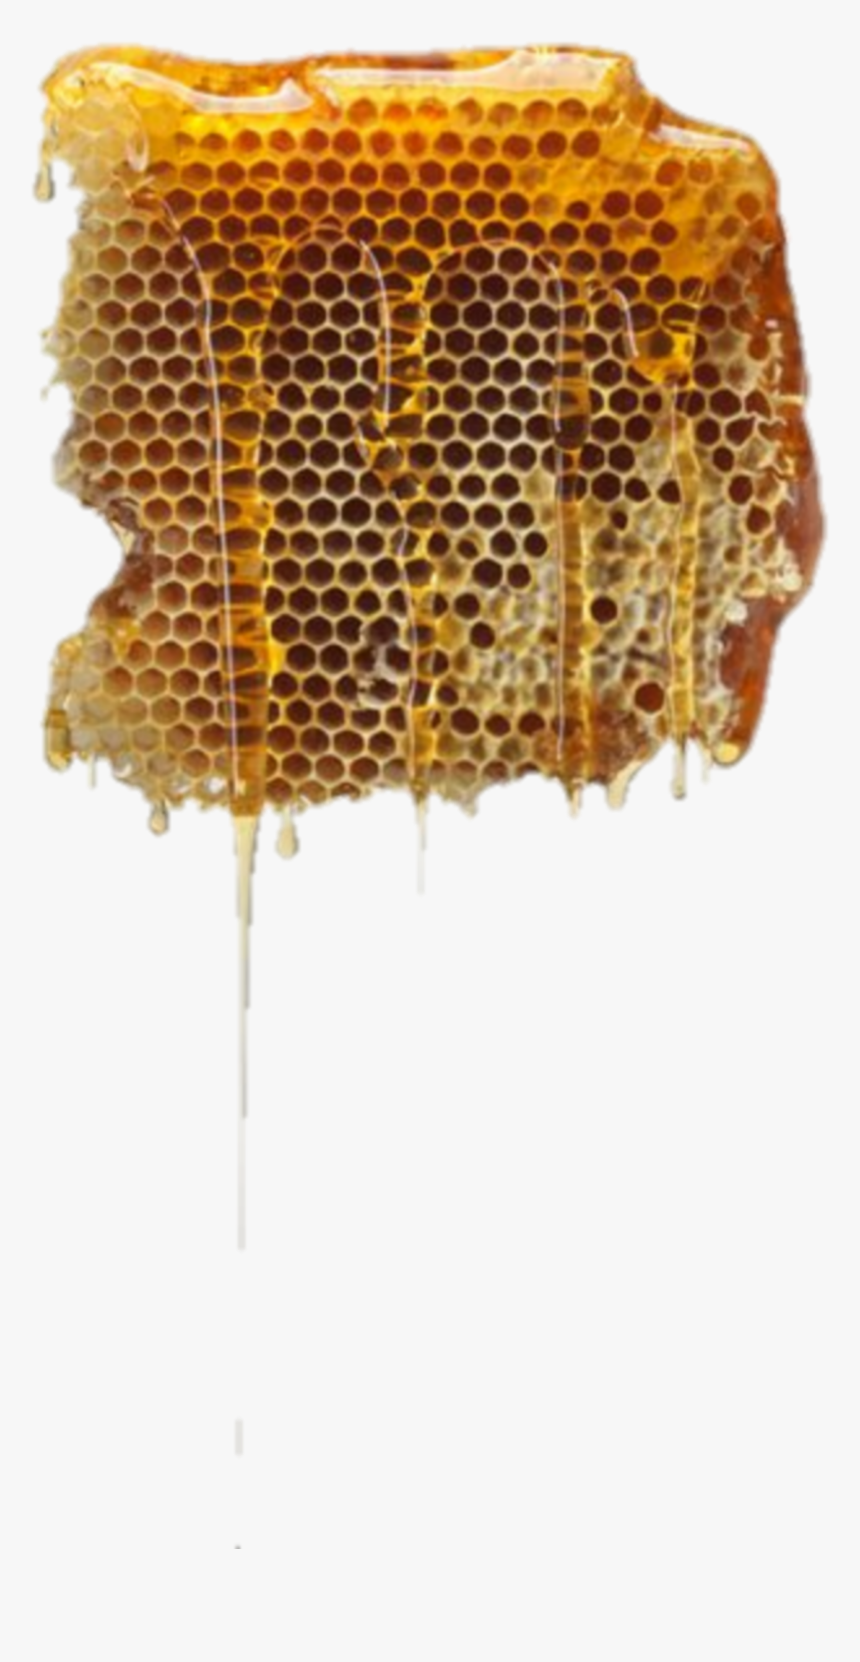 #honey #sweet #beehive - Beehive Png, Transparent Png, Free Download